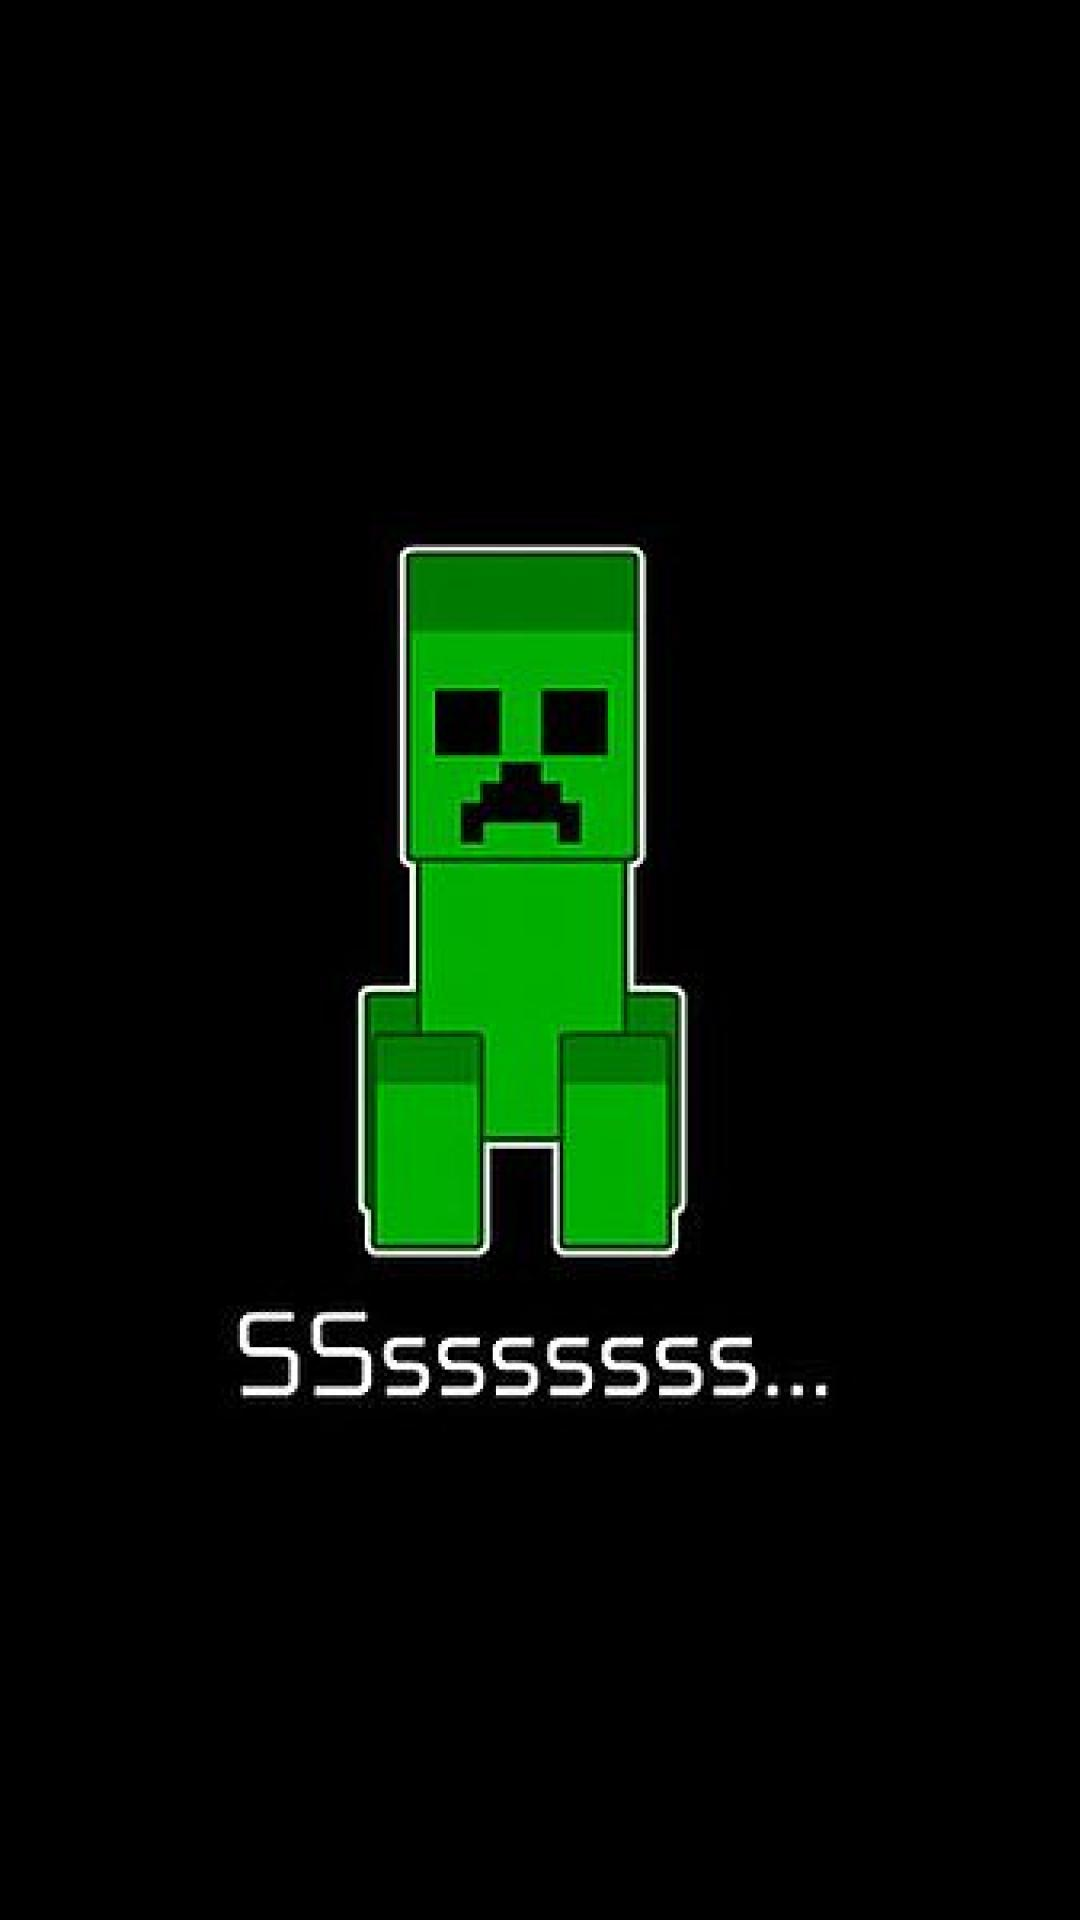 Download Minecraft Wallpaper For Phone Gallery